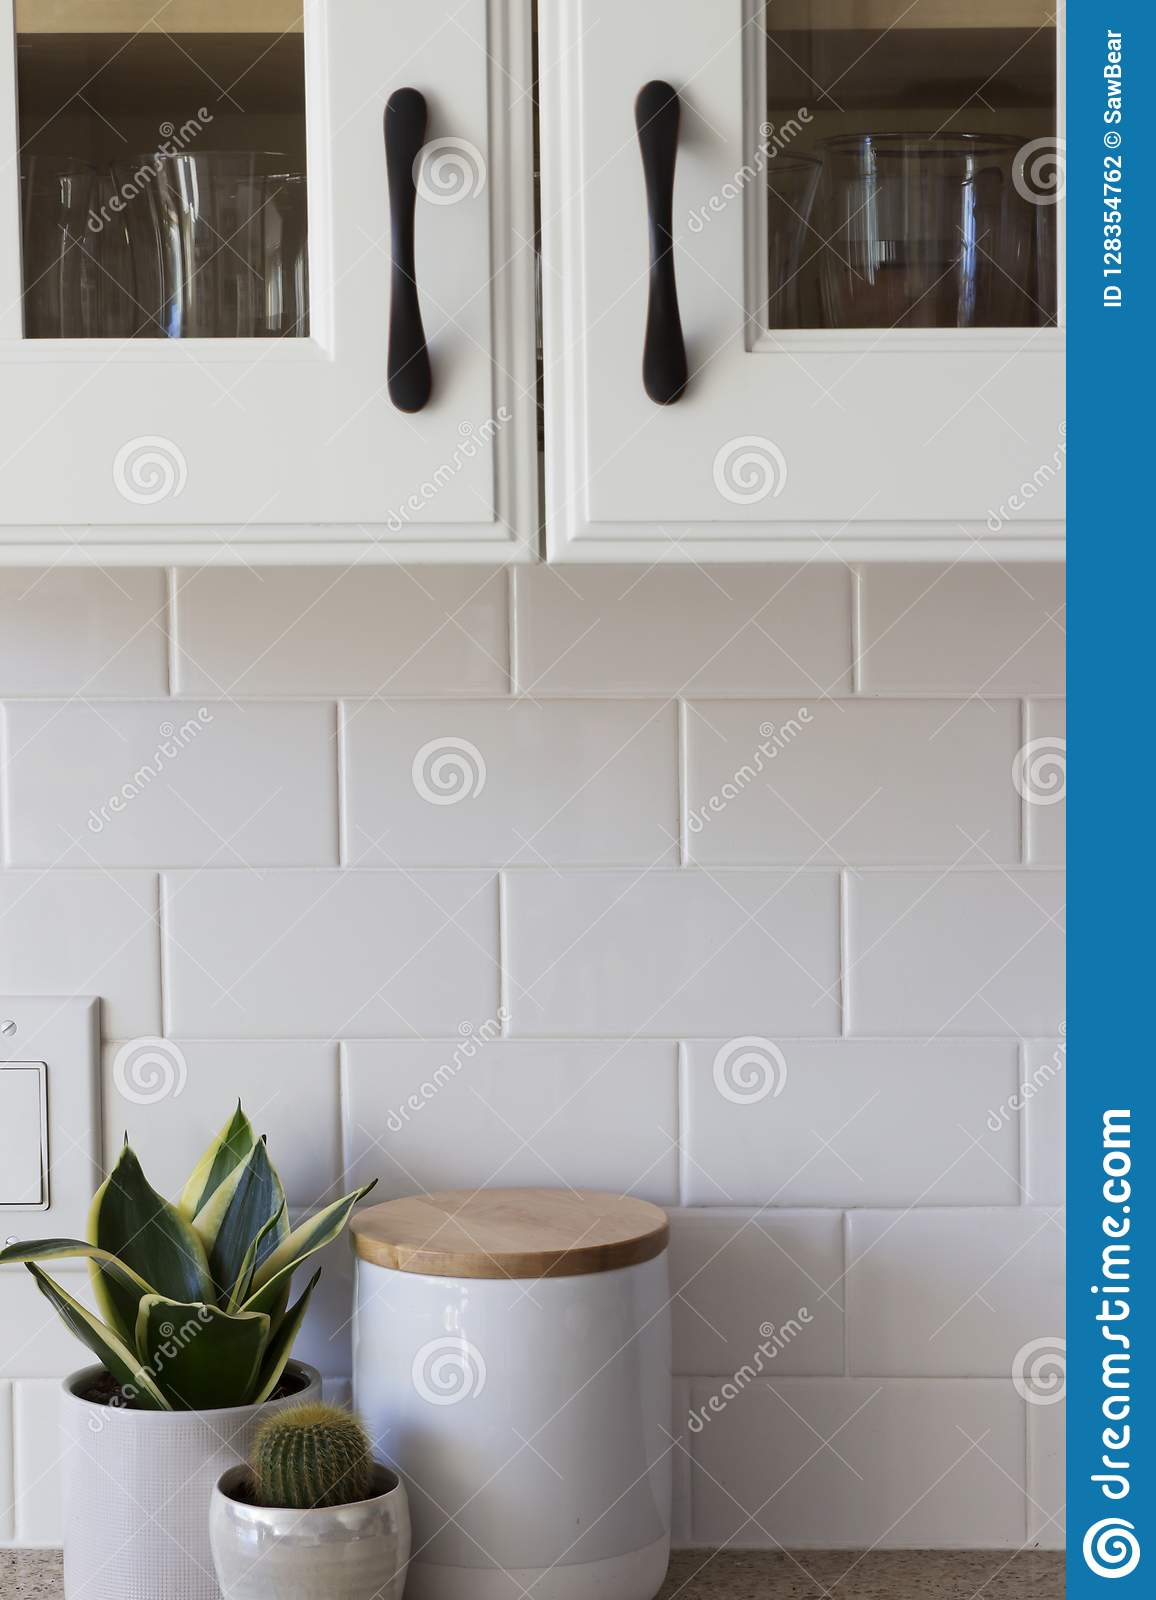 All White Kitchen Cabinet Tile And Decor Stock Photo Image Of Arrange Copy 128354762